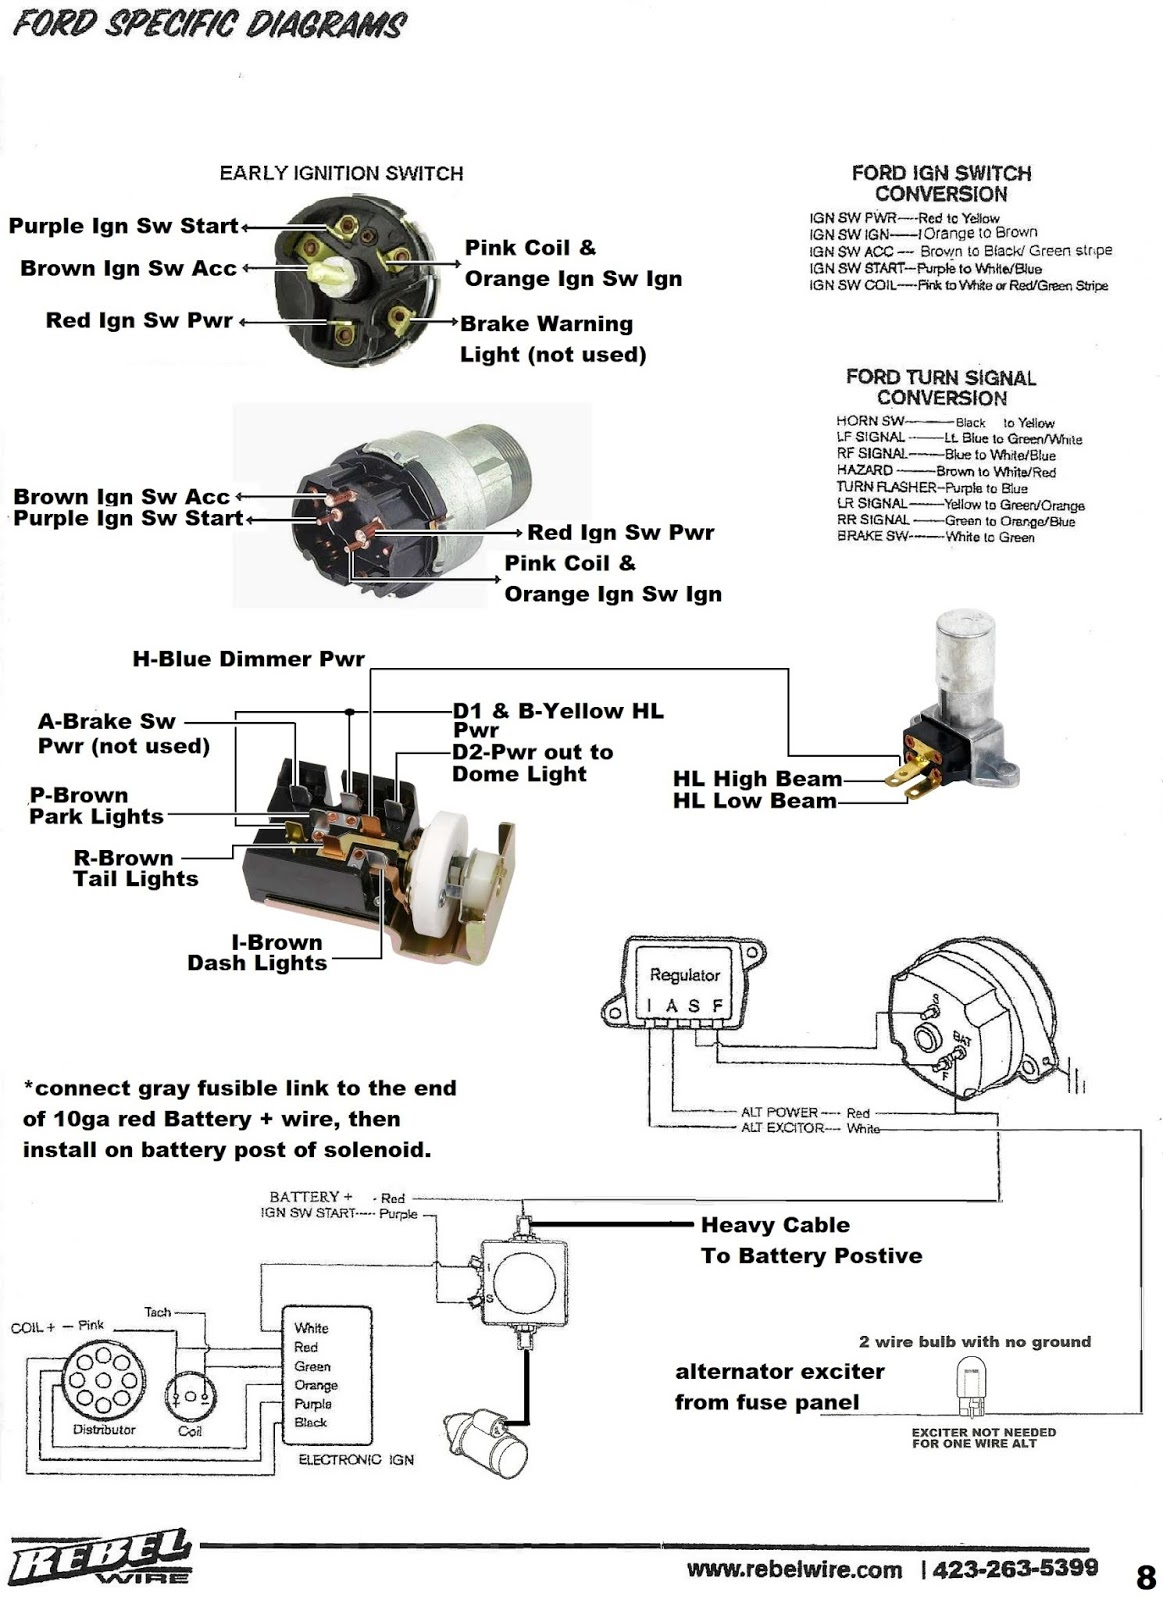 [DIAGRAM_34OR]  1969 Ford Ignition Switch Wiring Diagram Wiring Diagram Of 3 Way Switch -  tembak-andas.the-rocks.it | Ford Ignition Switch Wiring |  | Bege Wiring Diagram Source Full Edition